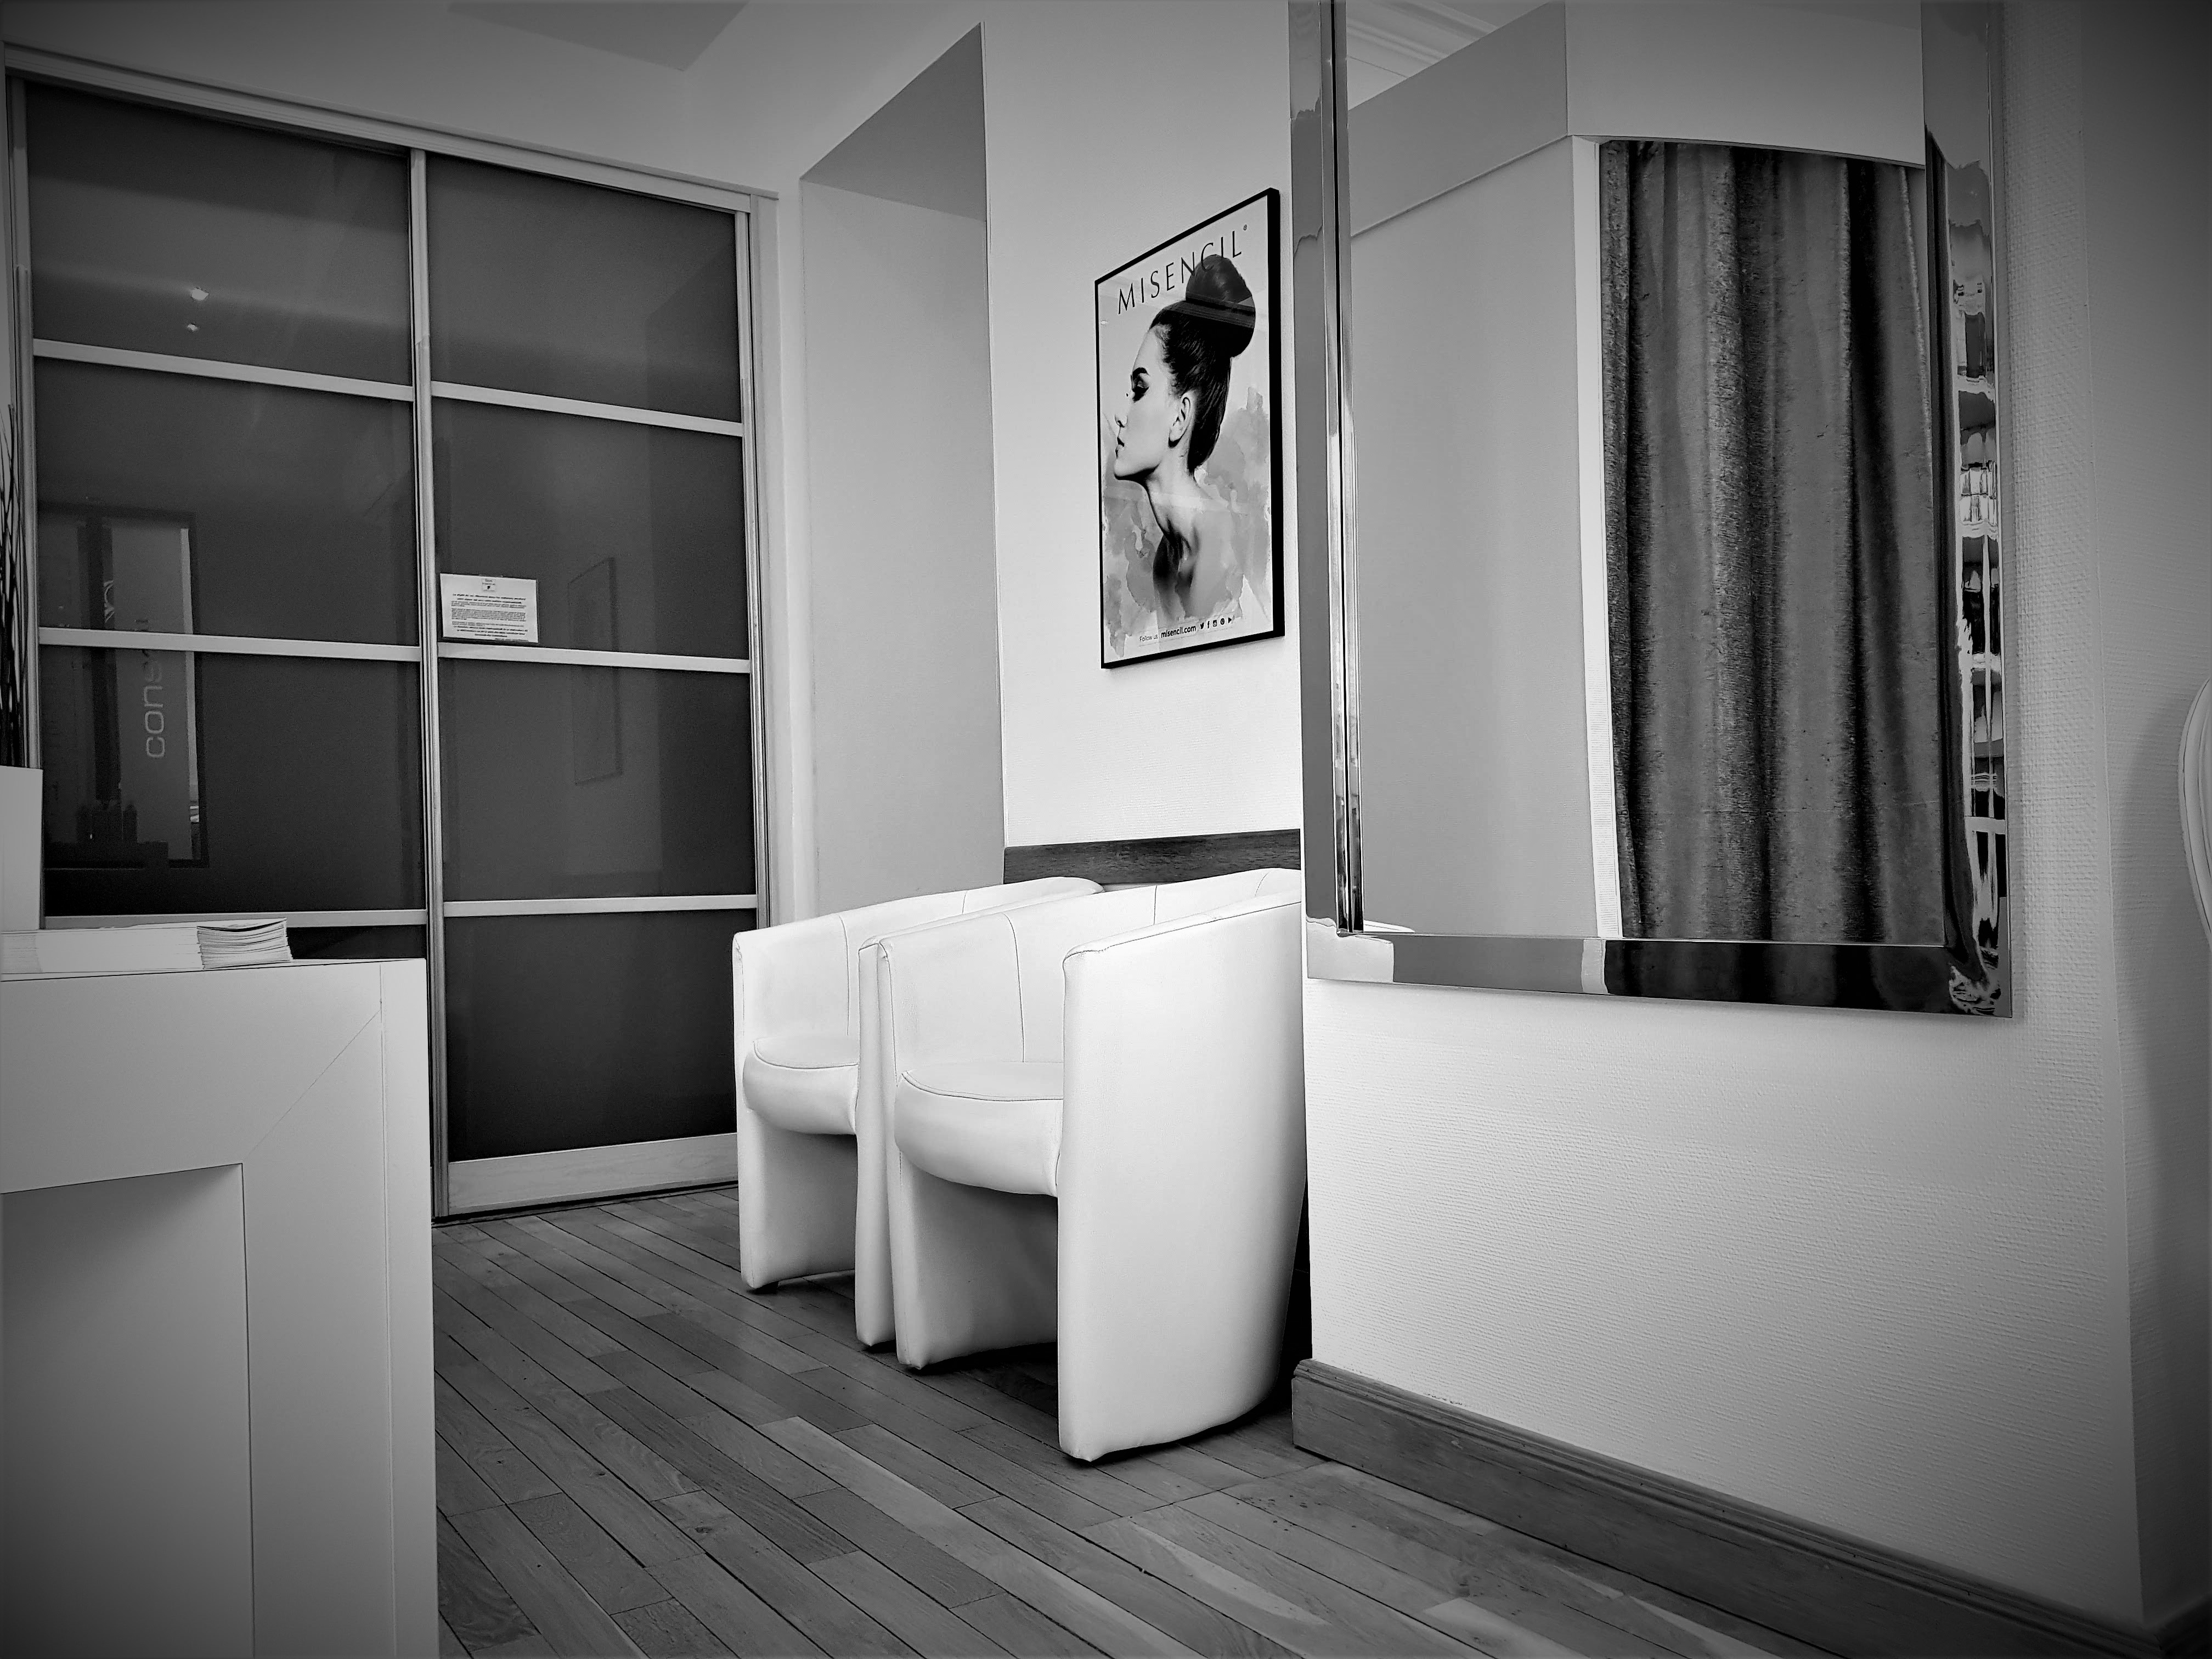 Salon Esthetique Reims Accueil Spa Institut By Michelle Defrance